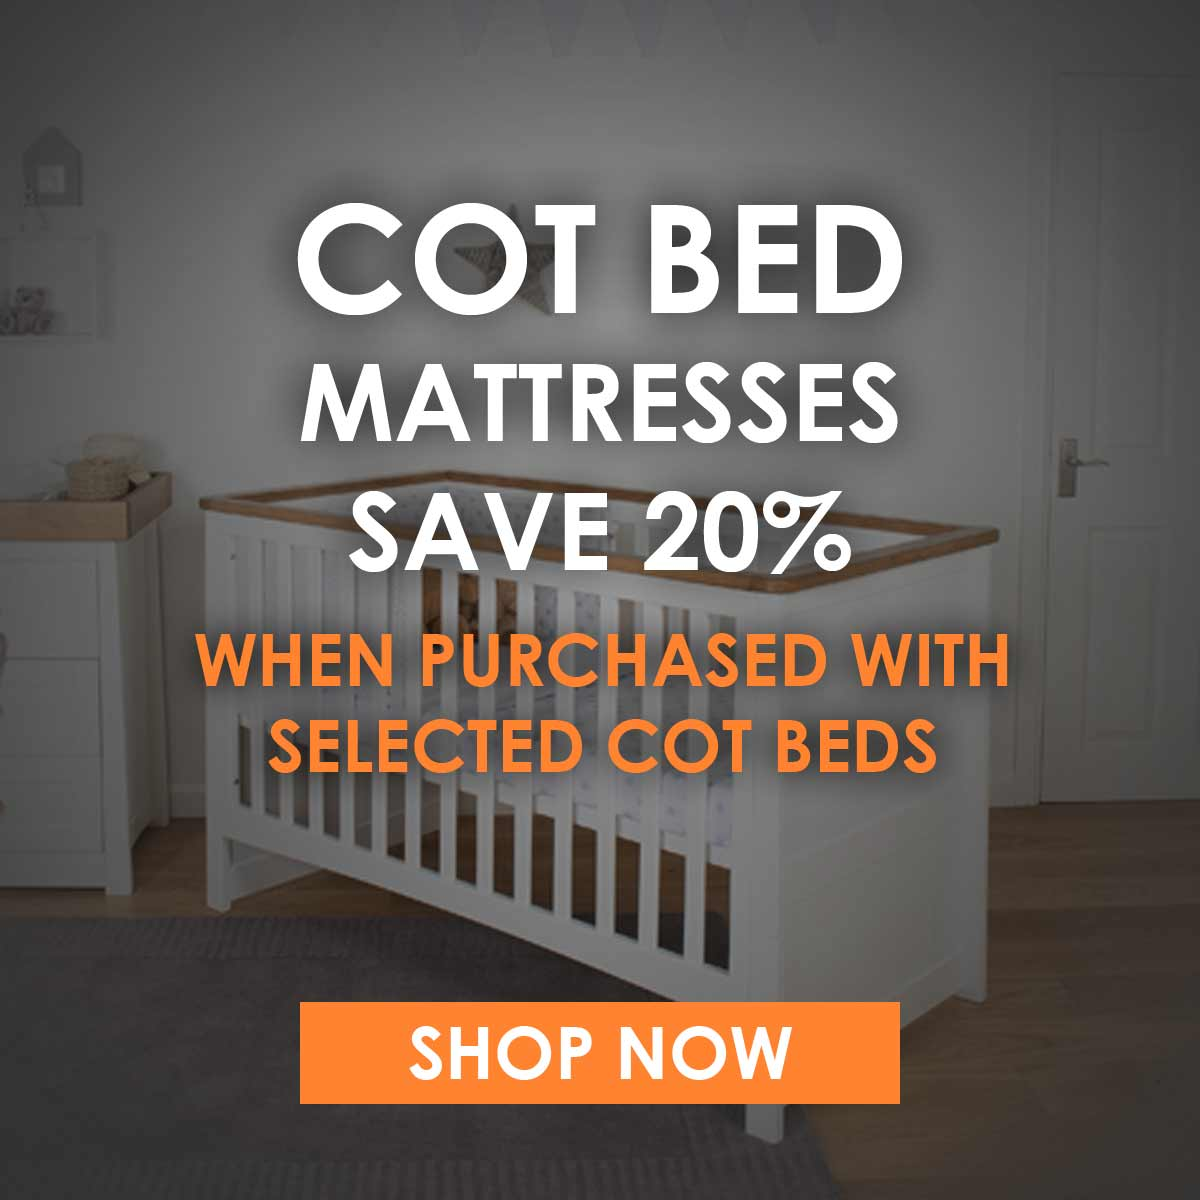 Cot Bed Mattress offer